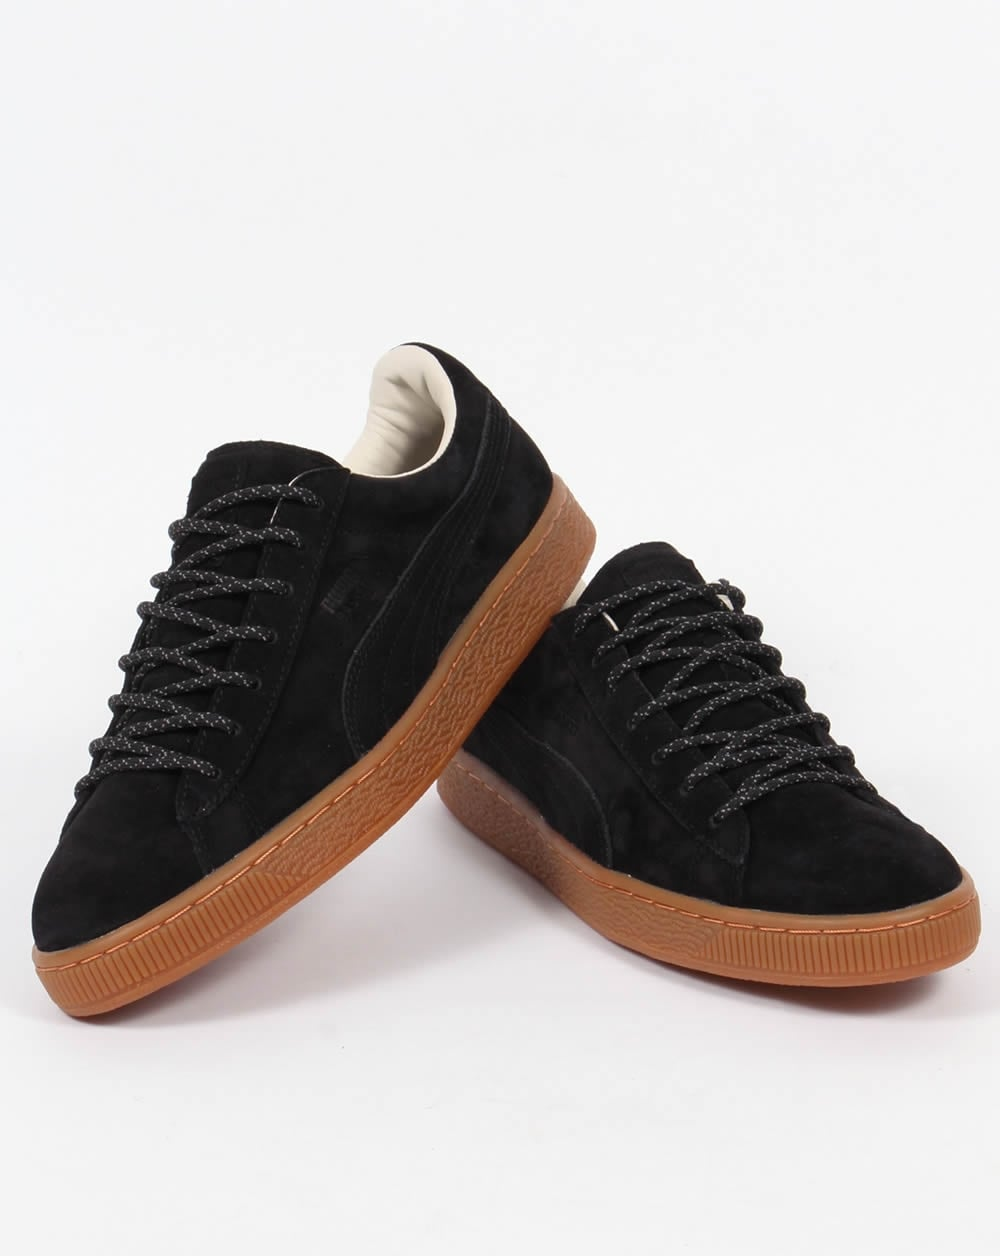 Puma - Puma Basket Classic Winterized - 41